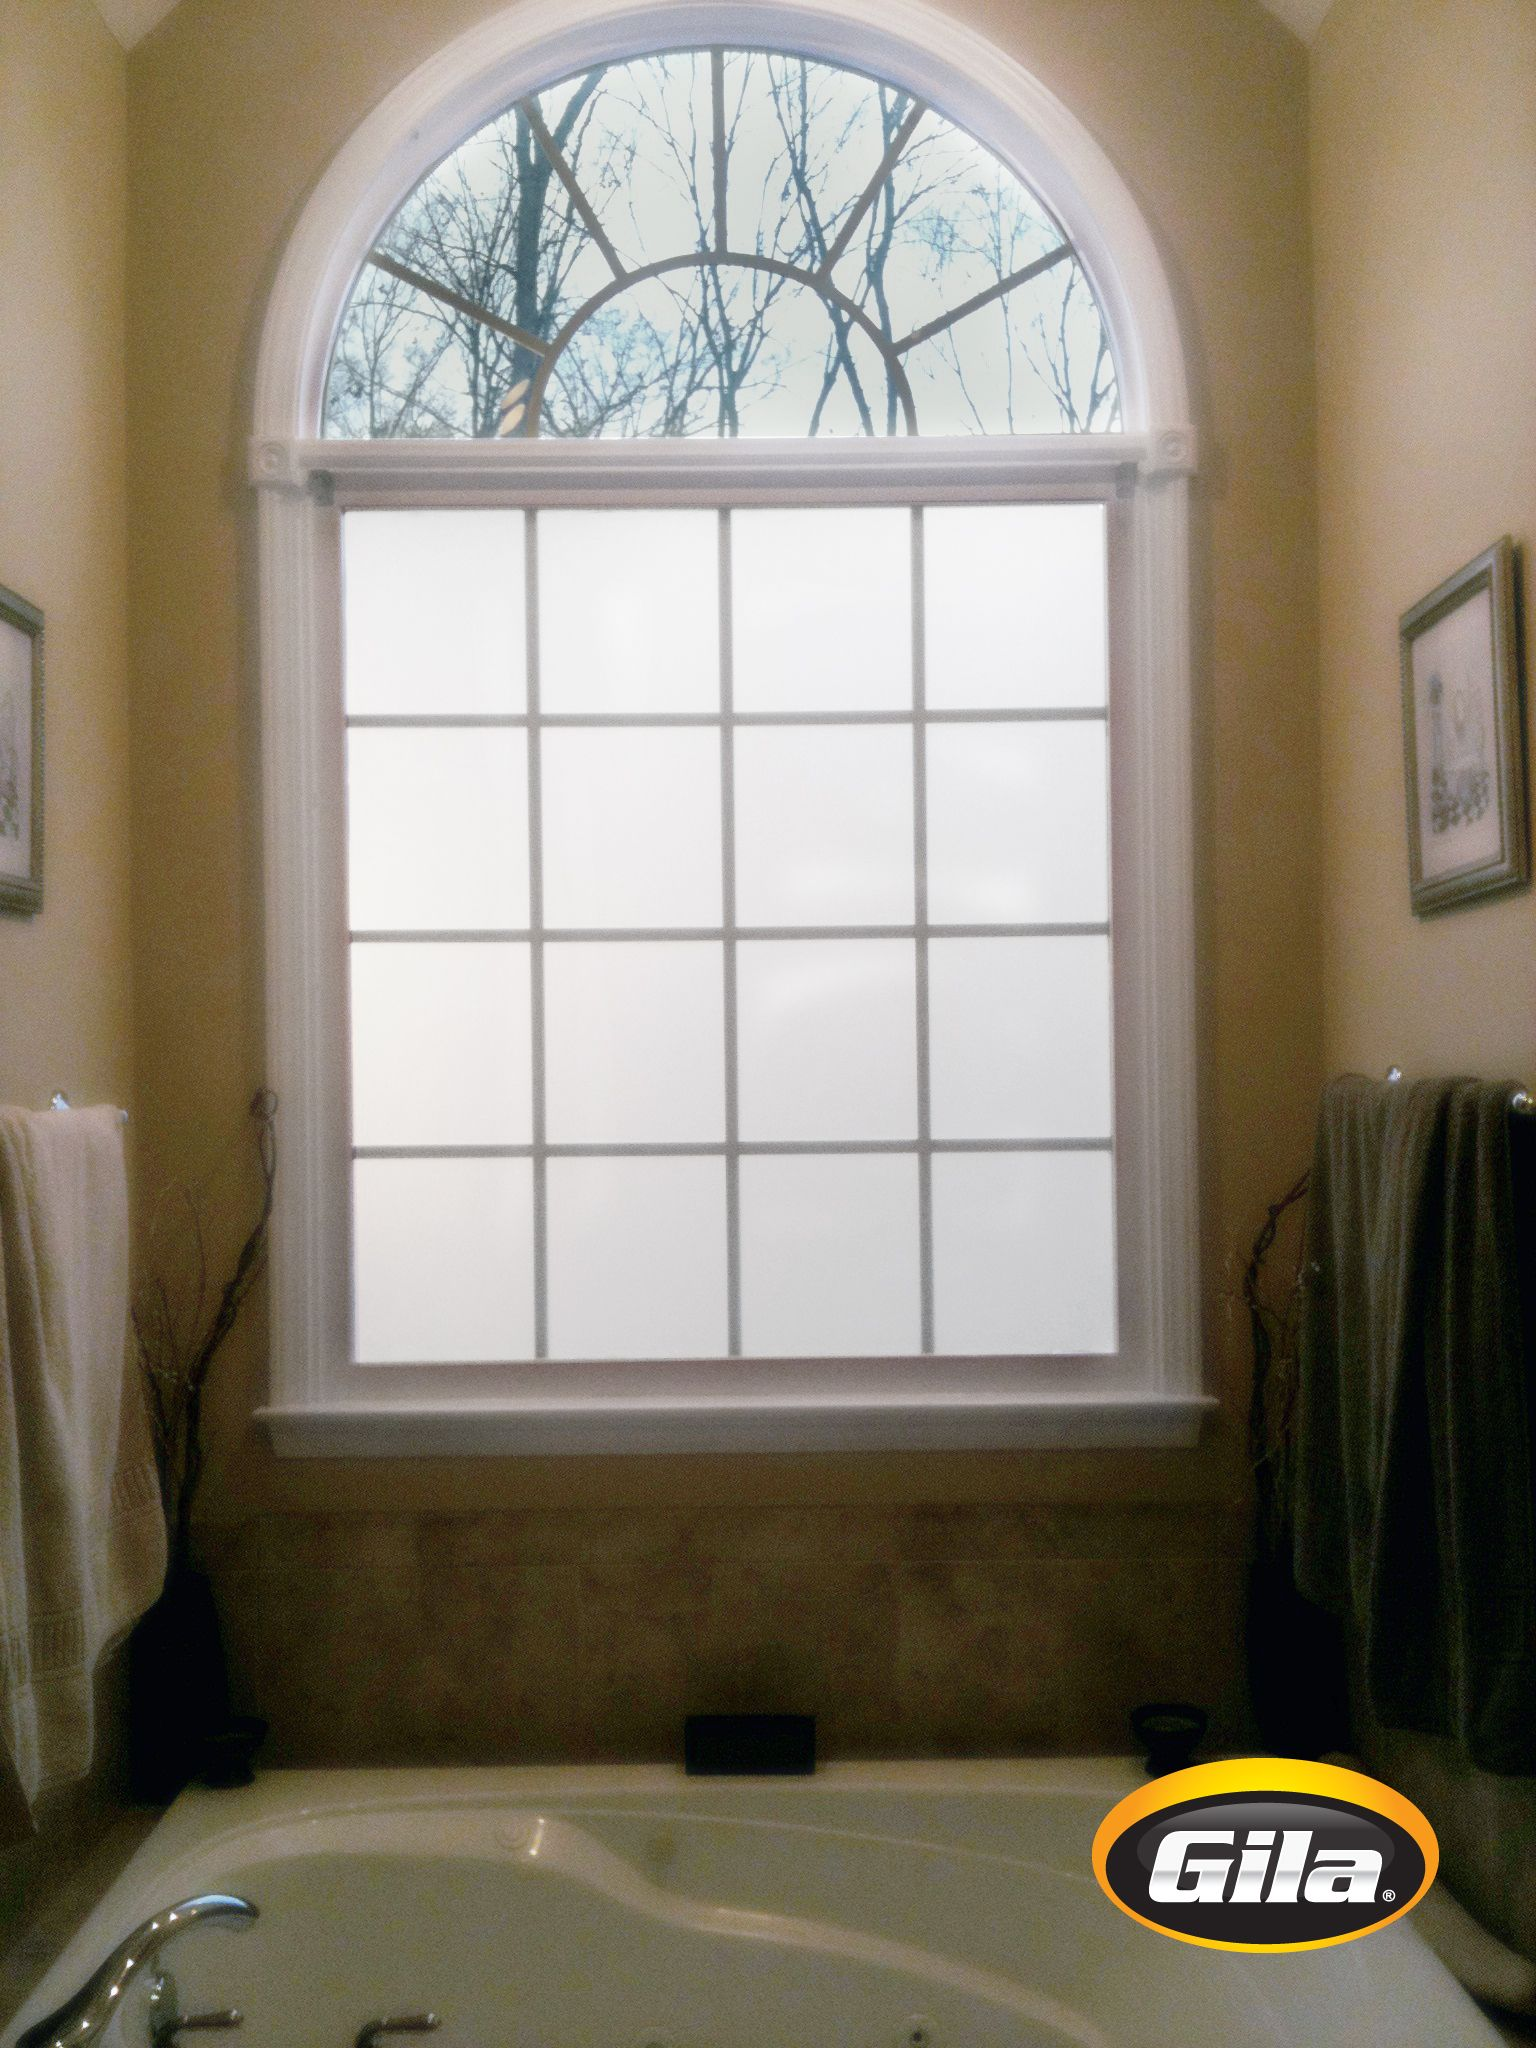 Add privacy to bathroom windows with frosted film ...